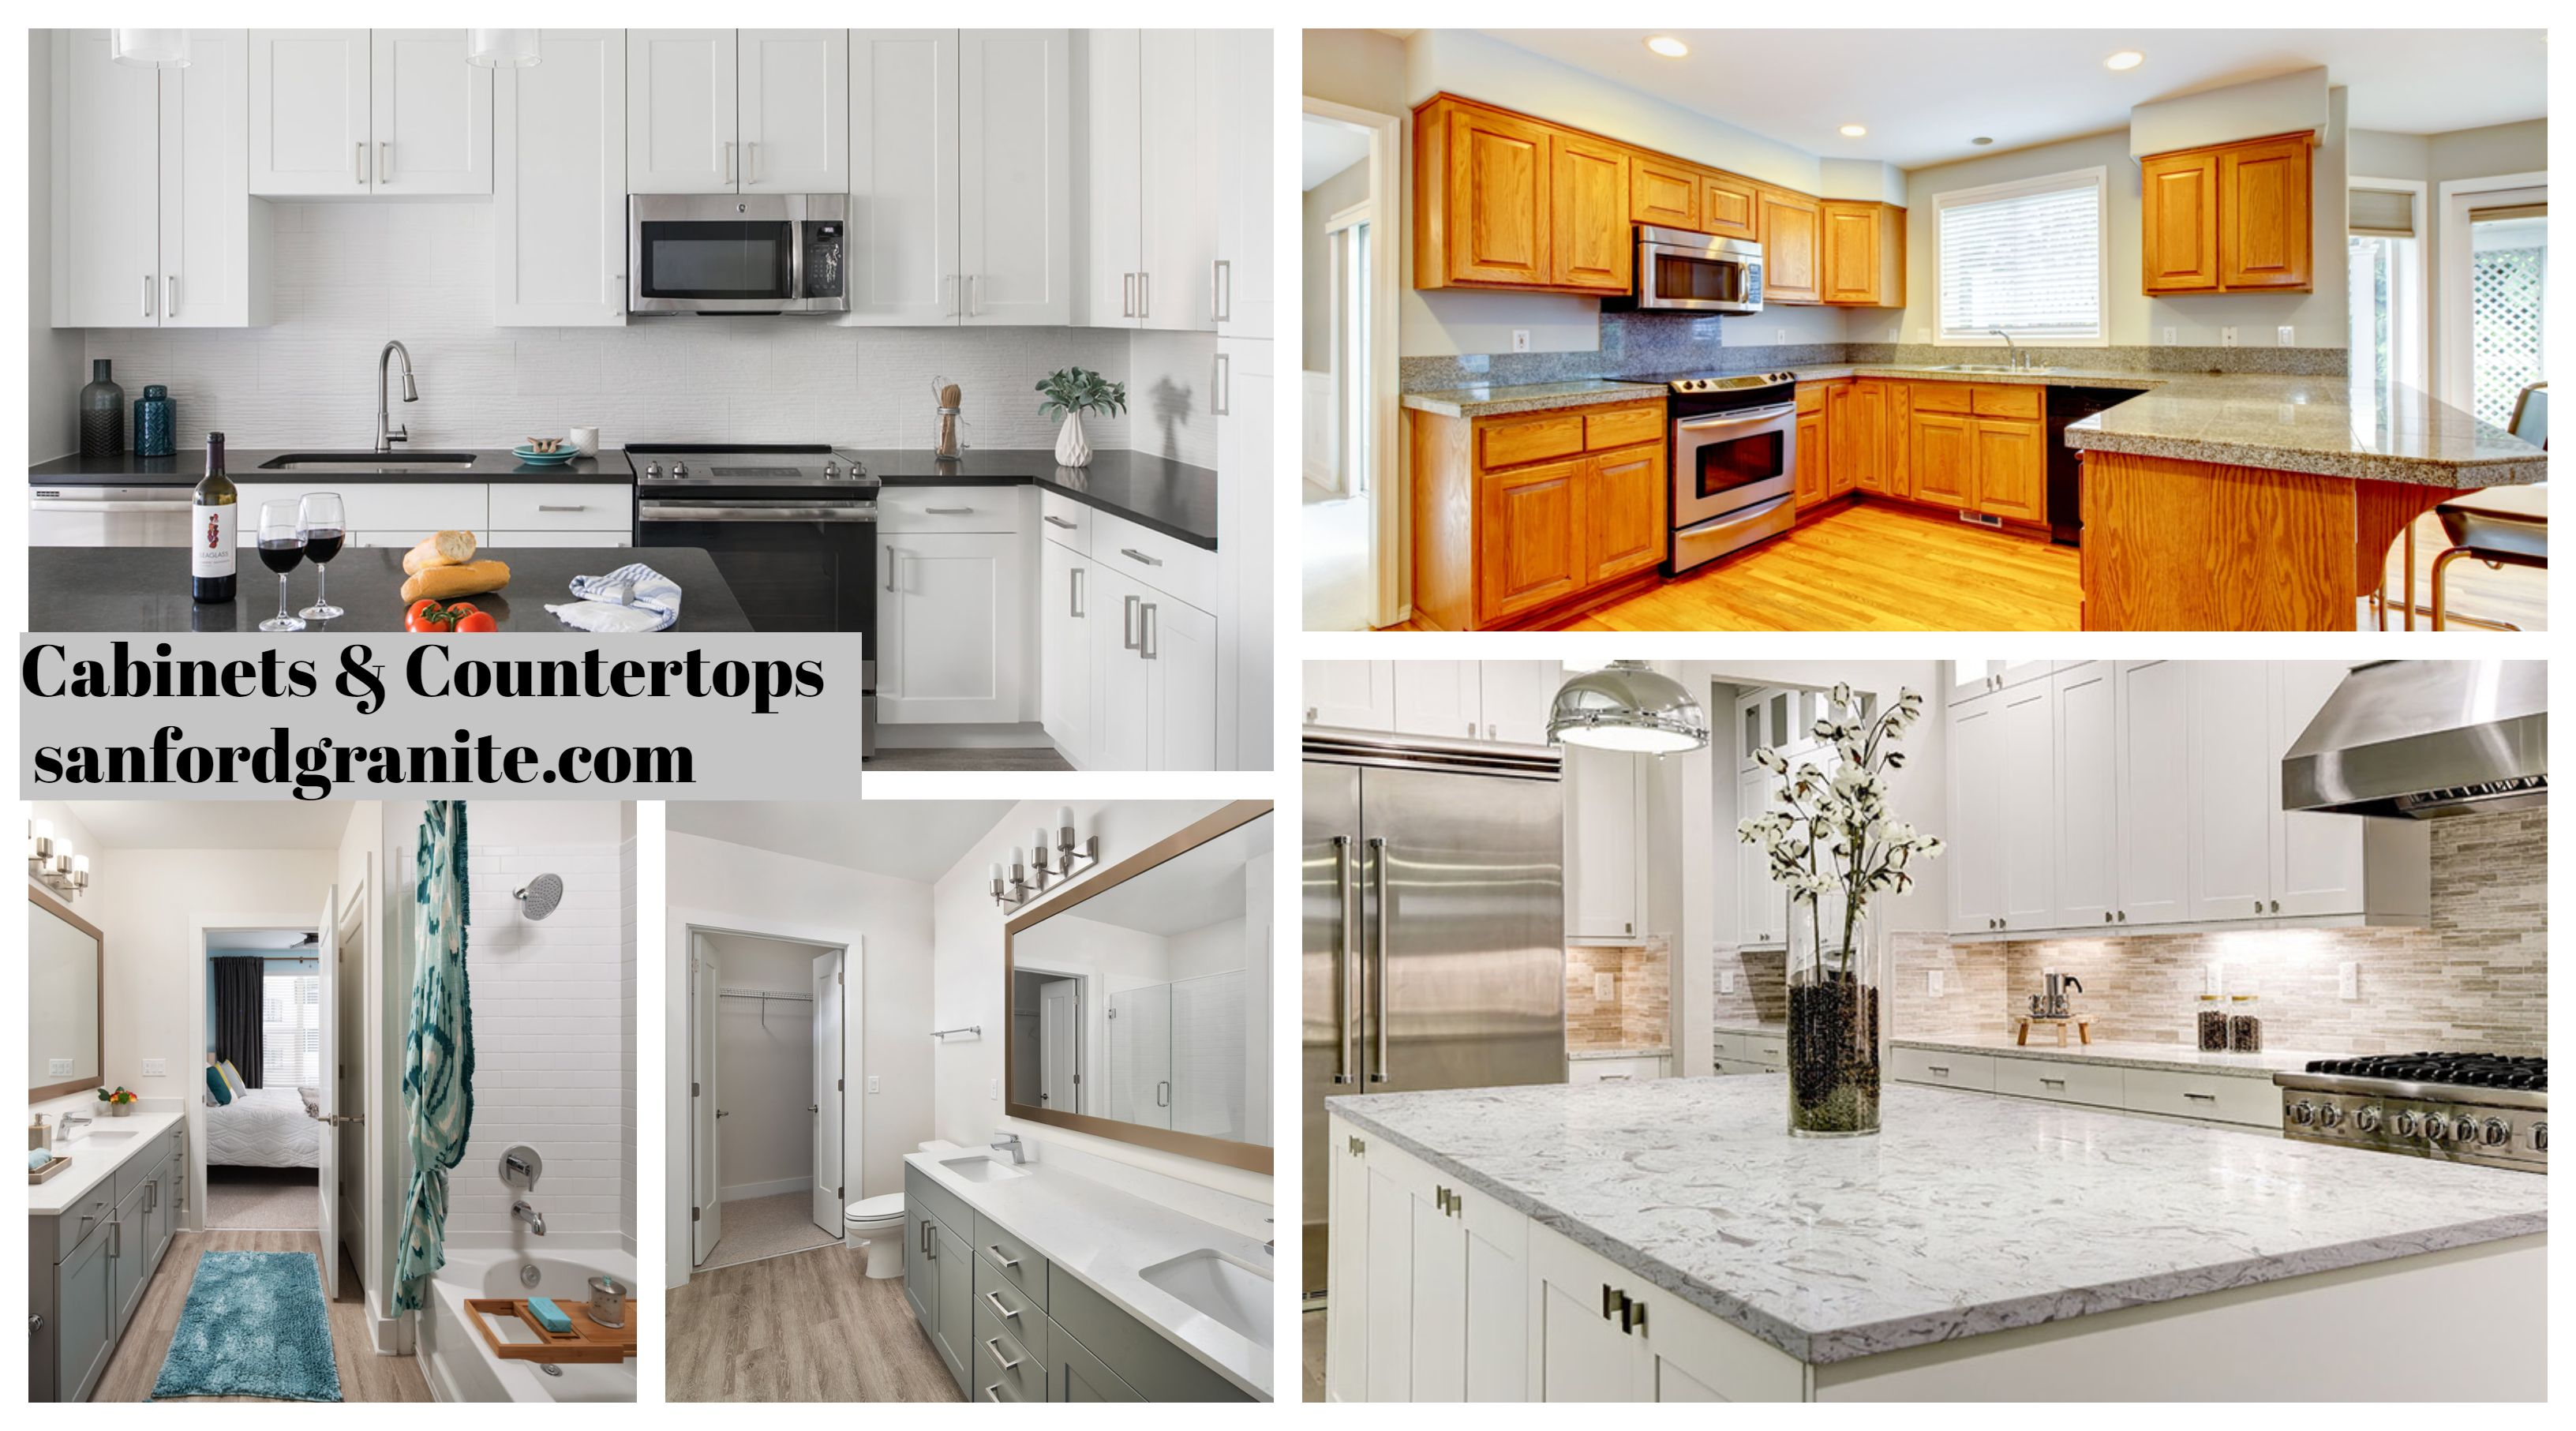 breathtaking kitchen & bathroom remodeling projects we diligently